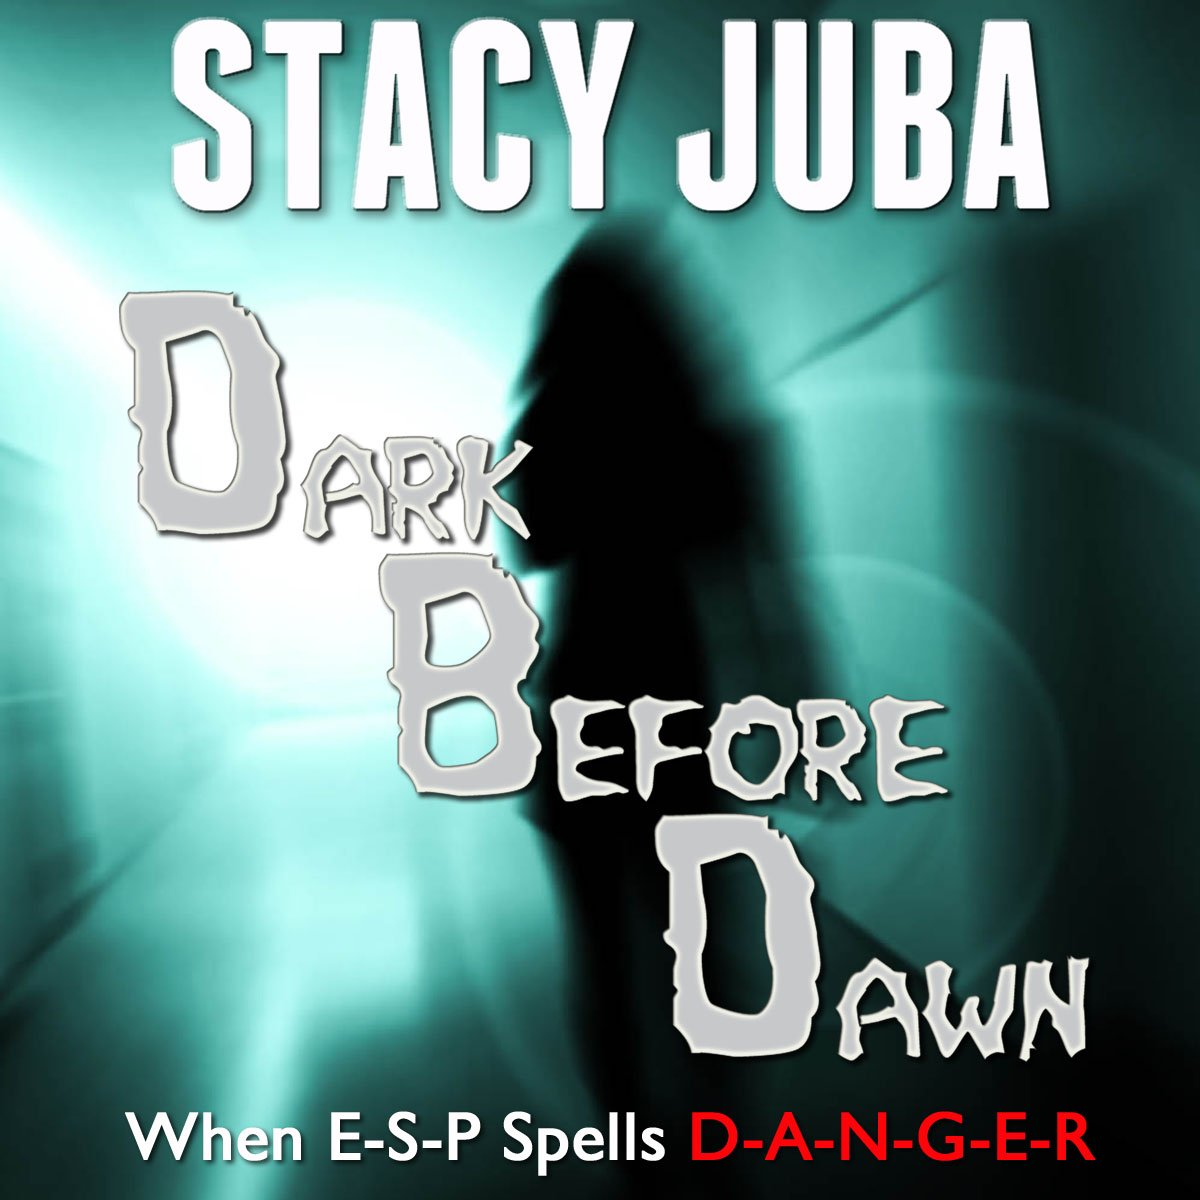 Discover Dark Before Dawn Psychic Book and Download #YA Sampler During #MFRW Event